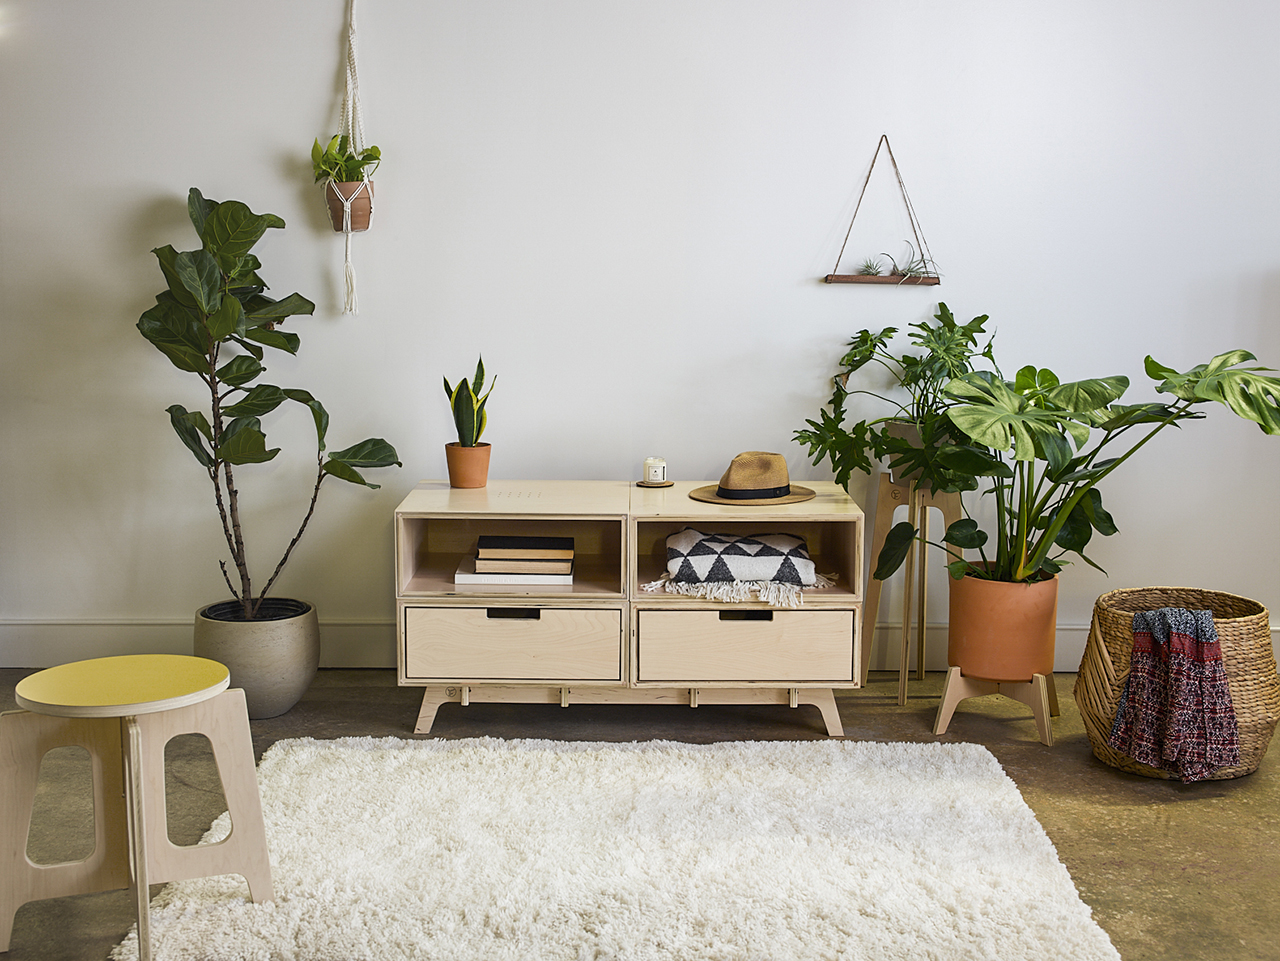 Flitch Furniture Makes Modular Furniture for Customizable Storage